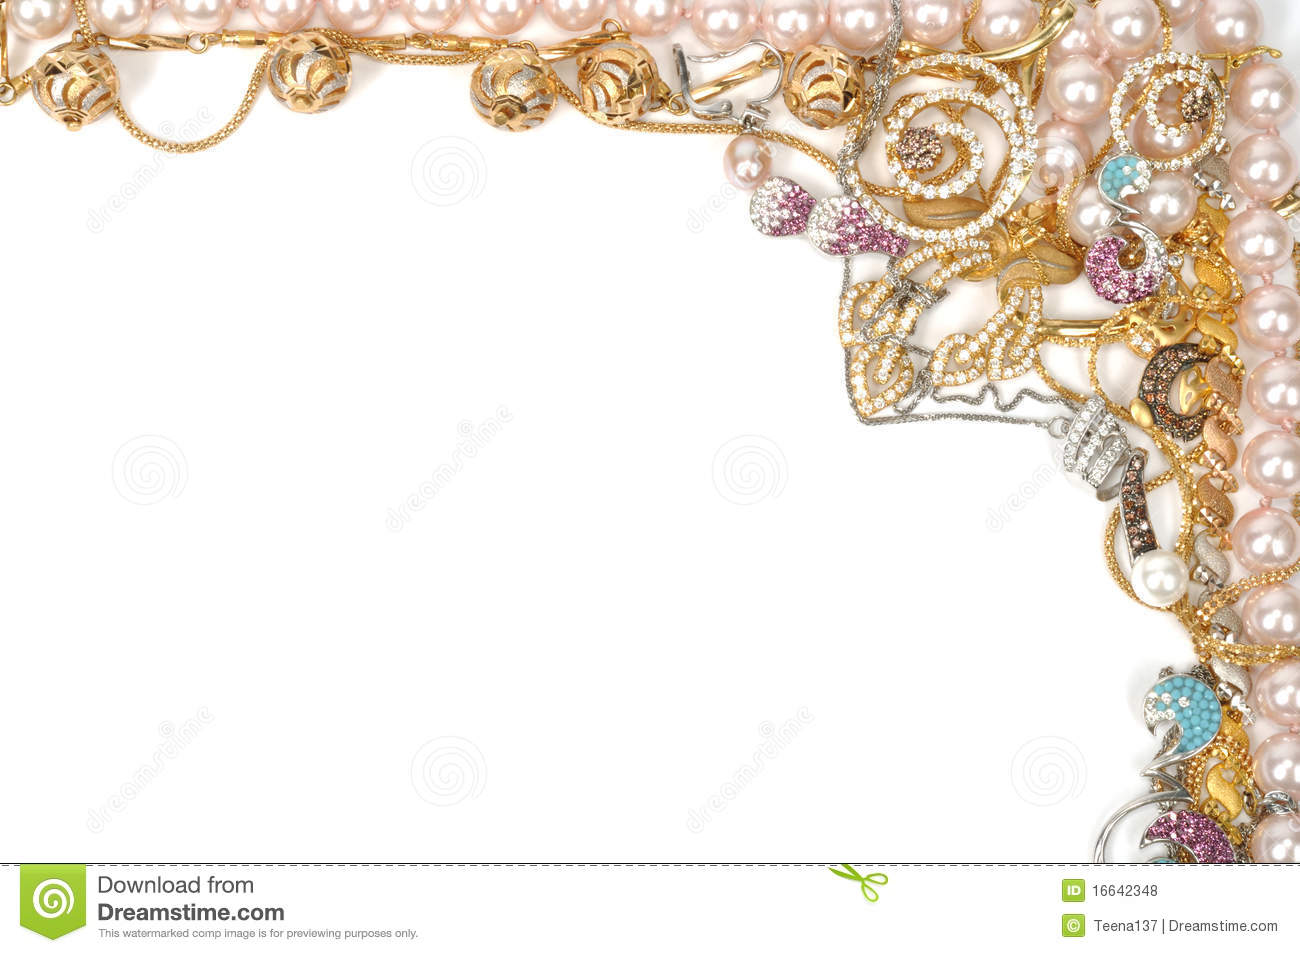 Jewelry Border Clipart Jewelry Border